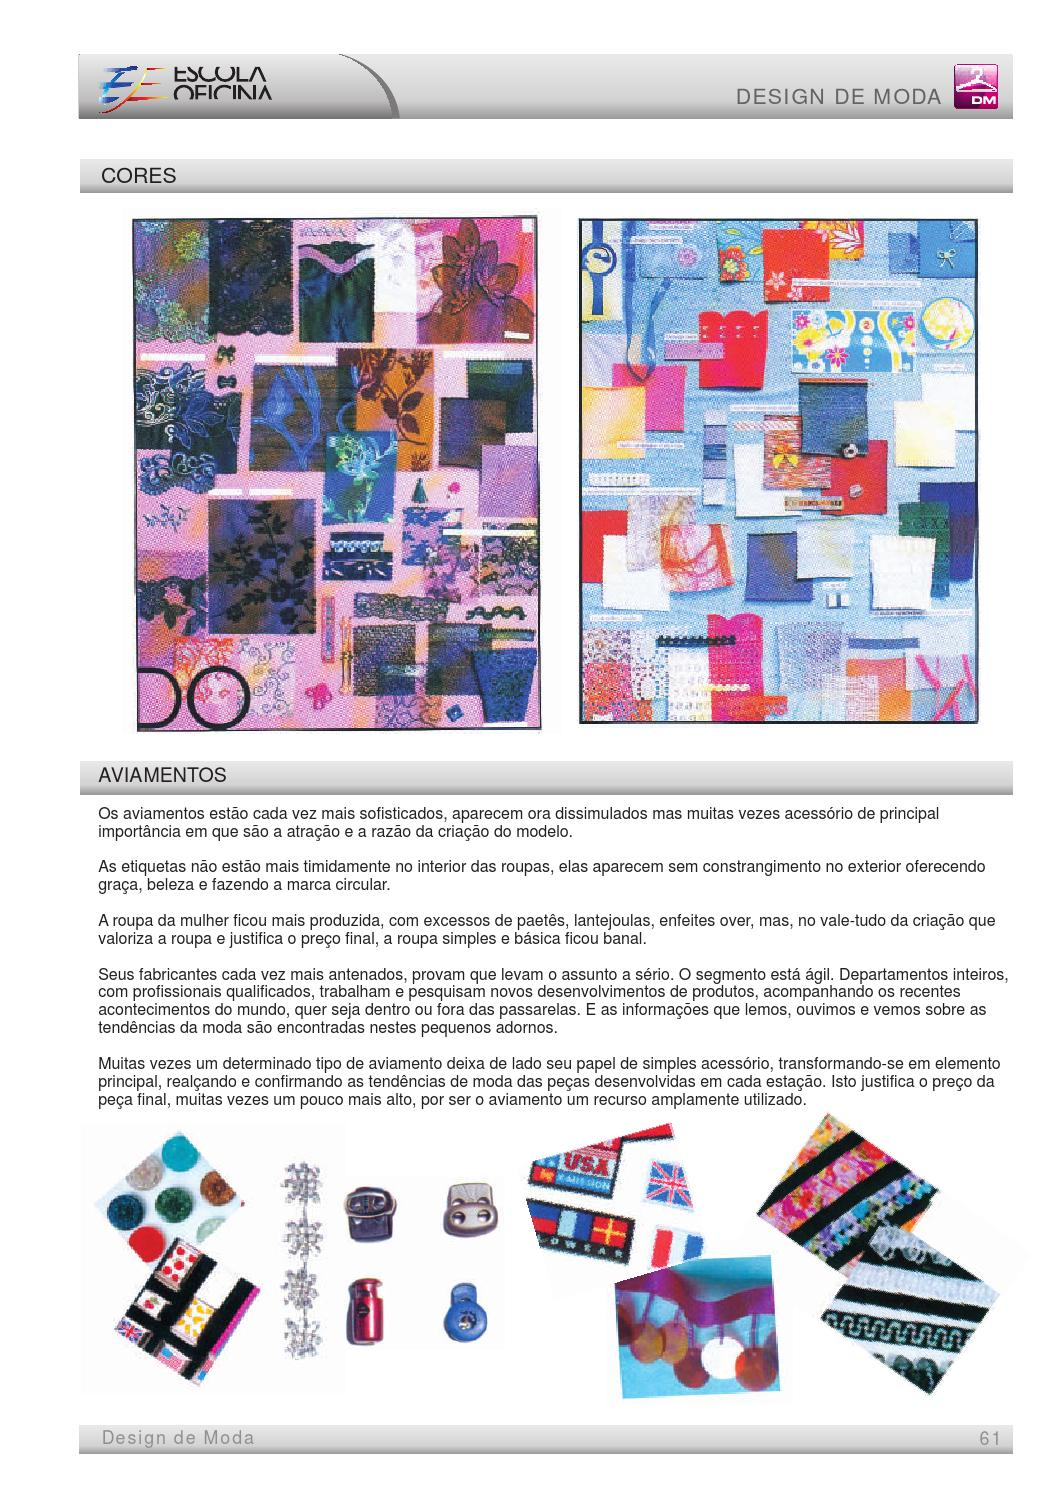 Moda parte 3 by André Fernandes Fernandes - issuu 9e7d09df79ea8